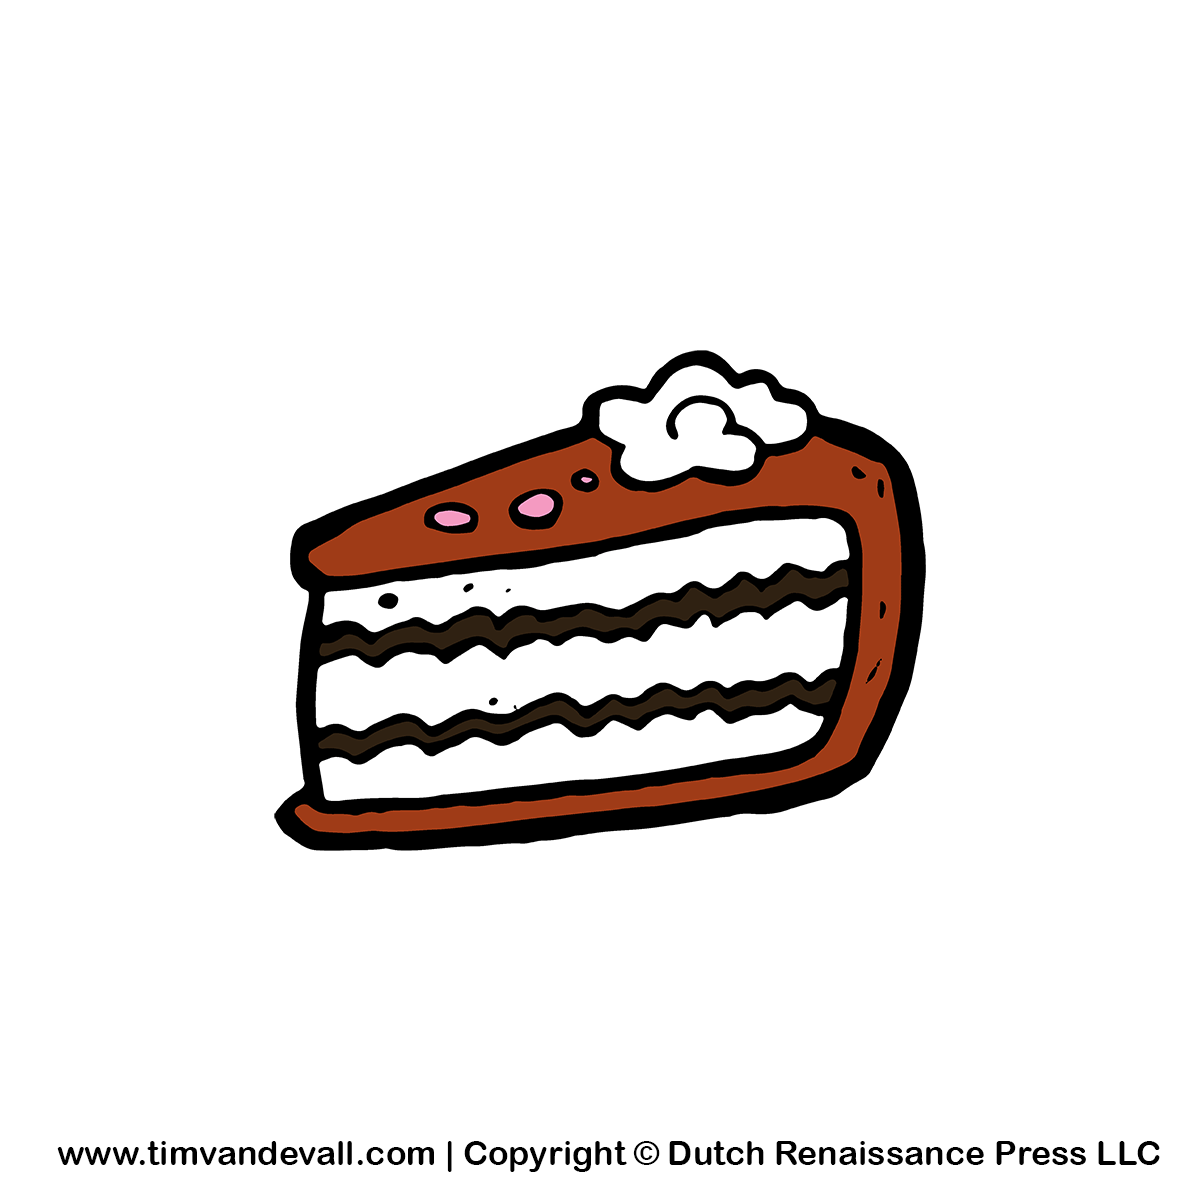 Slice Of Cake Illustrations, Royalty-Free Vector Graphics ...  |Cake Slice Clipart Black And White